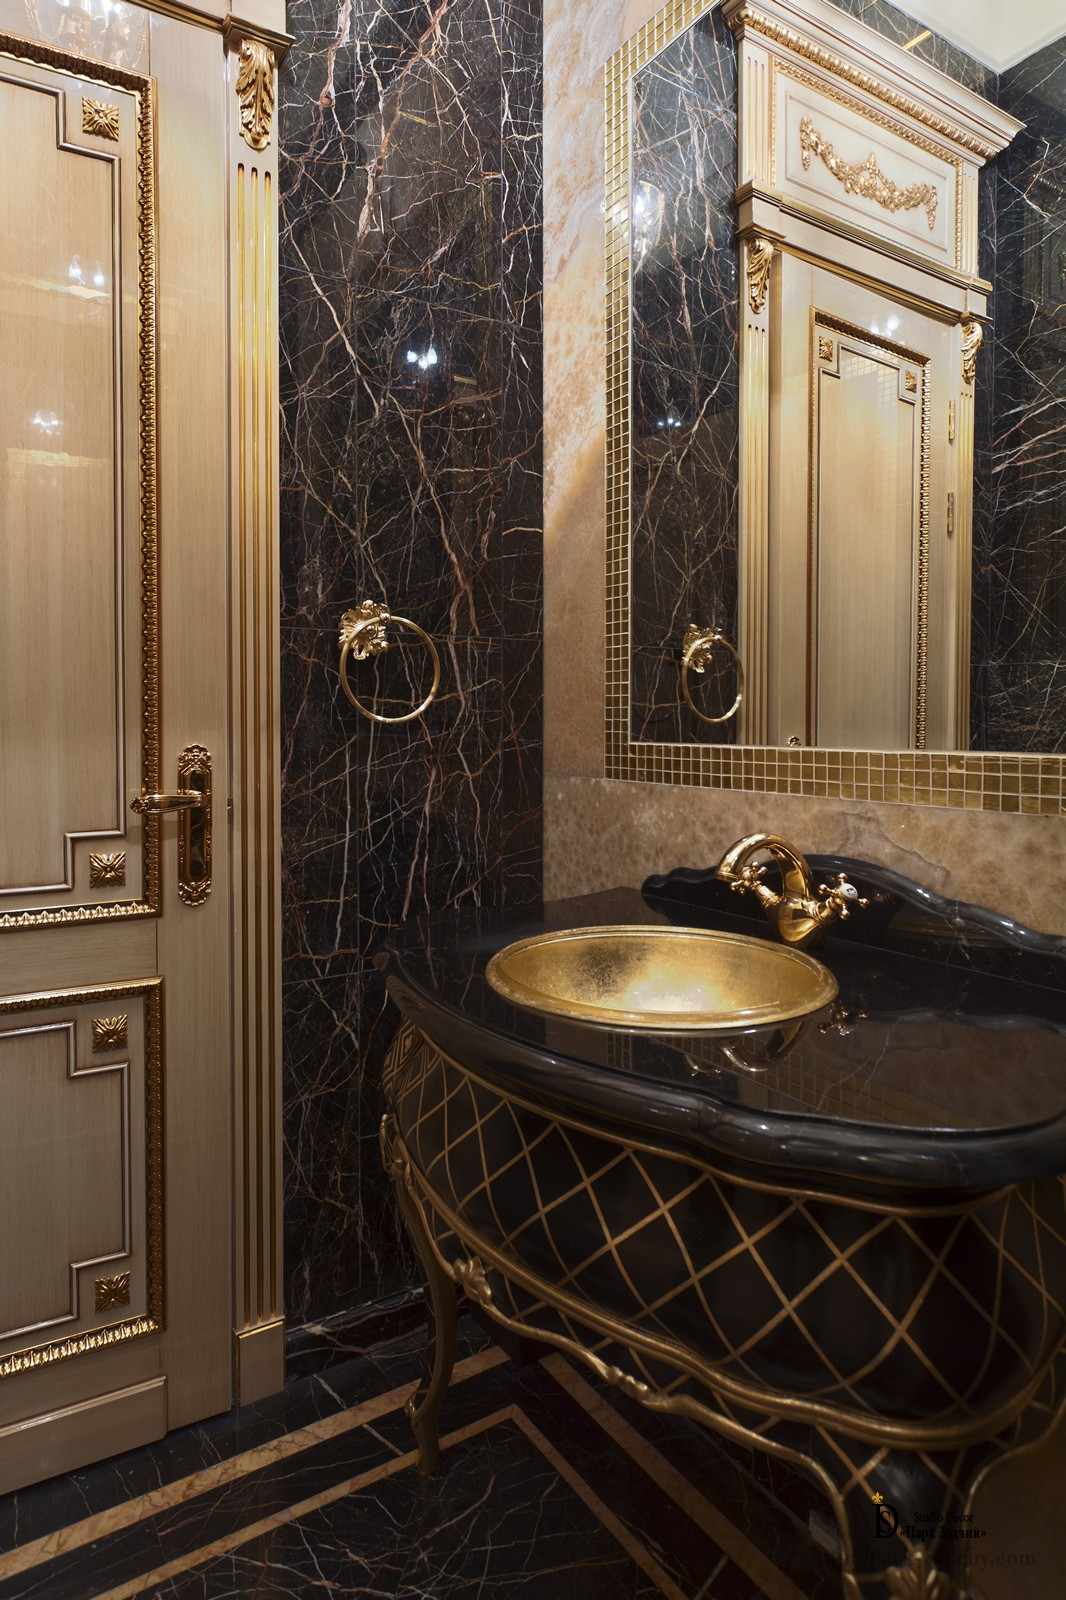 Expensive bathroom interior decorated with marble